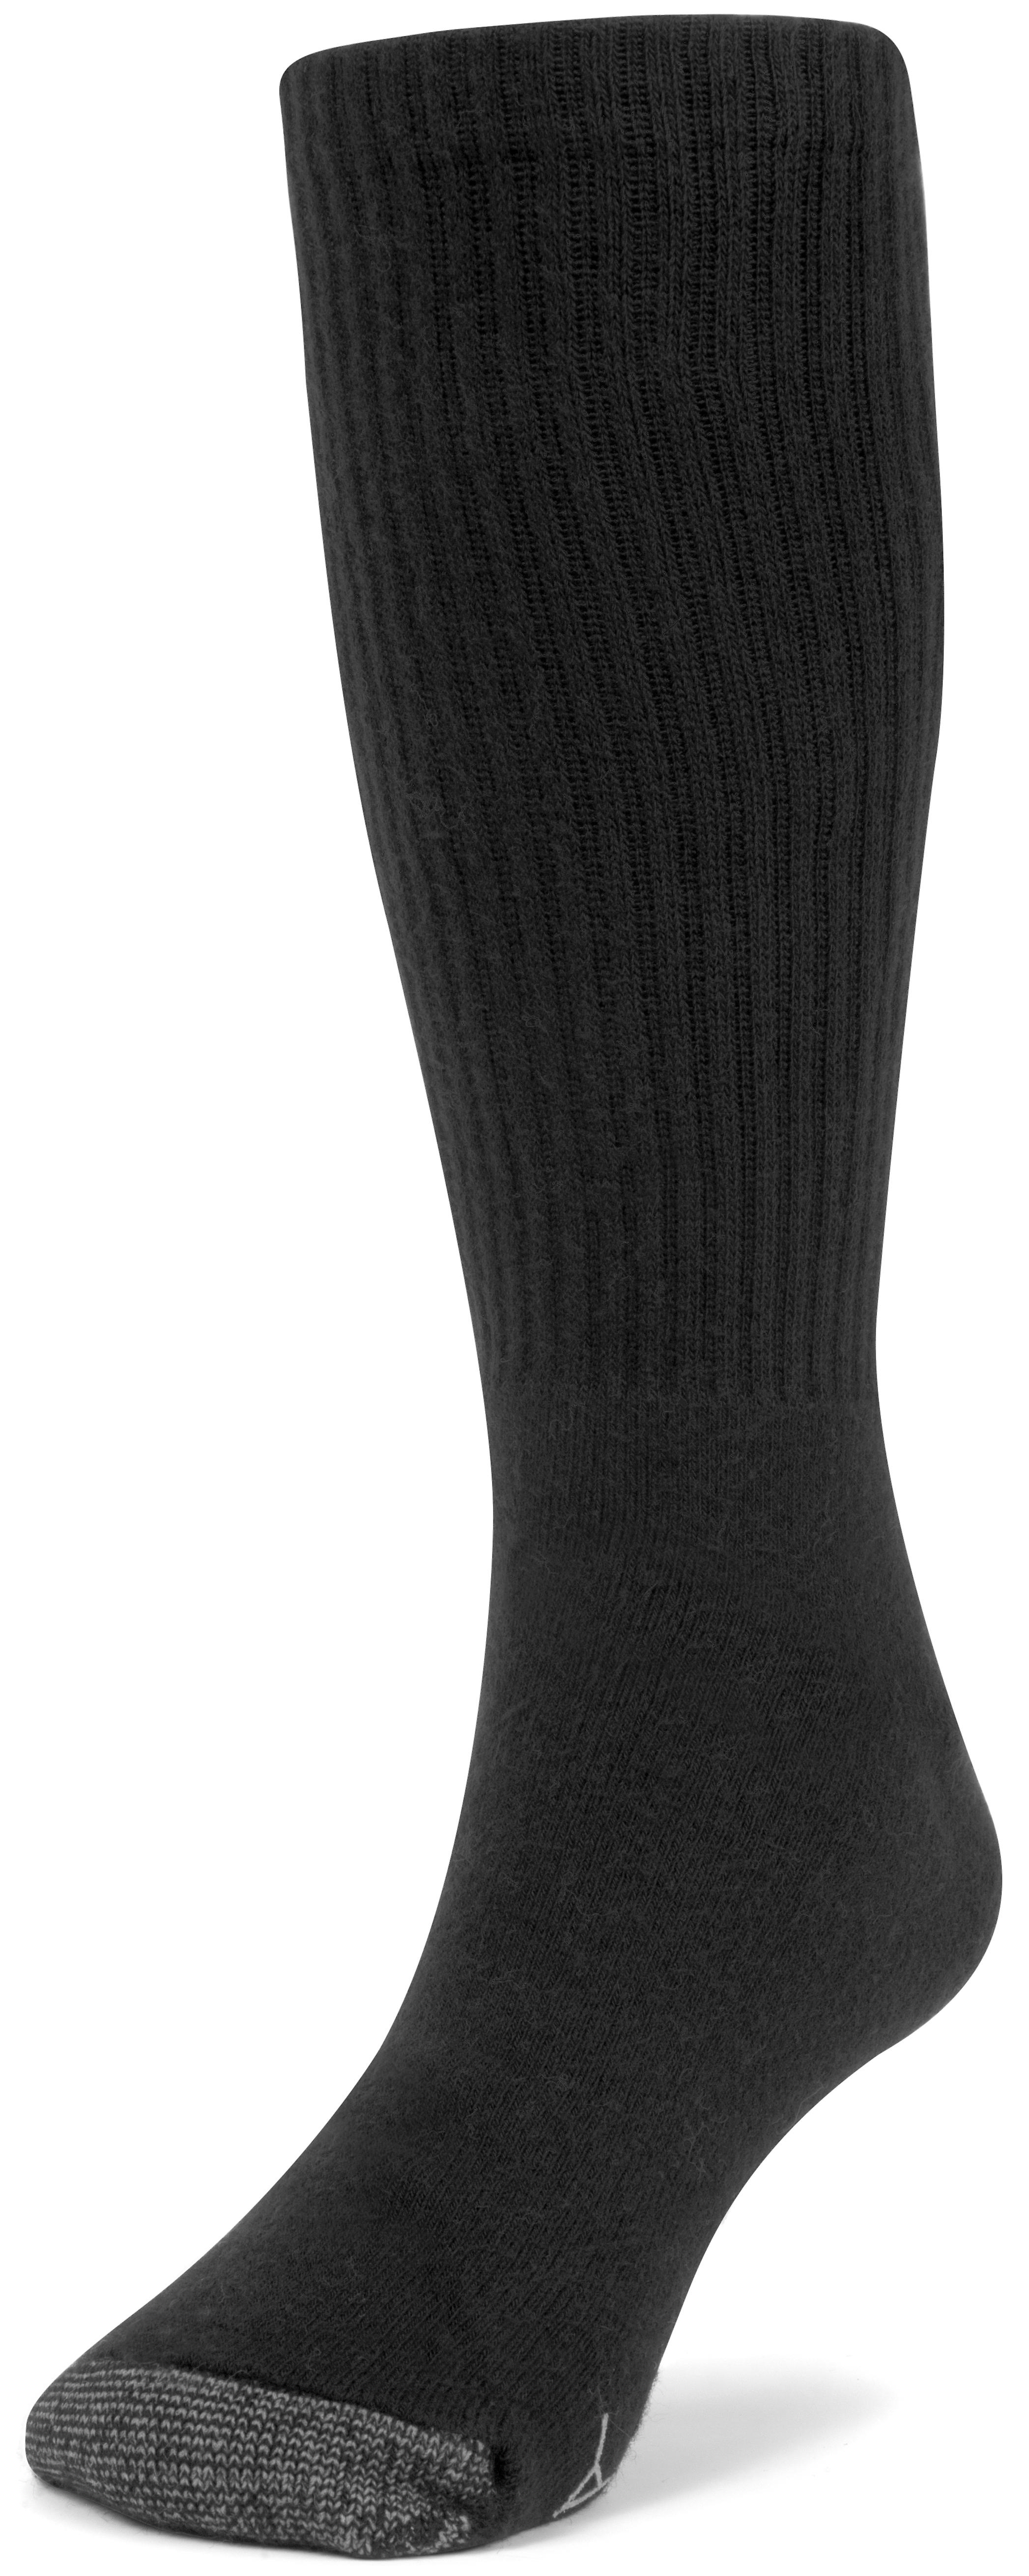 Galiva Boys' Cotton Extra Soft Crew Cushion Socks - 3 Pairs